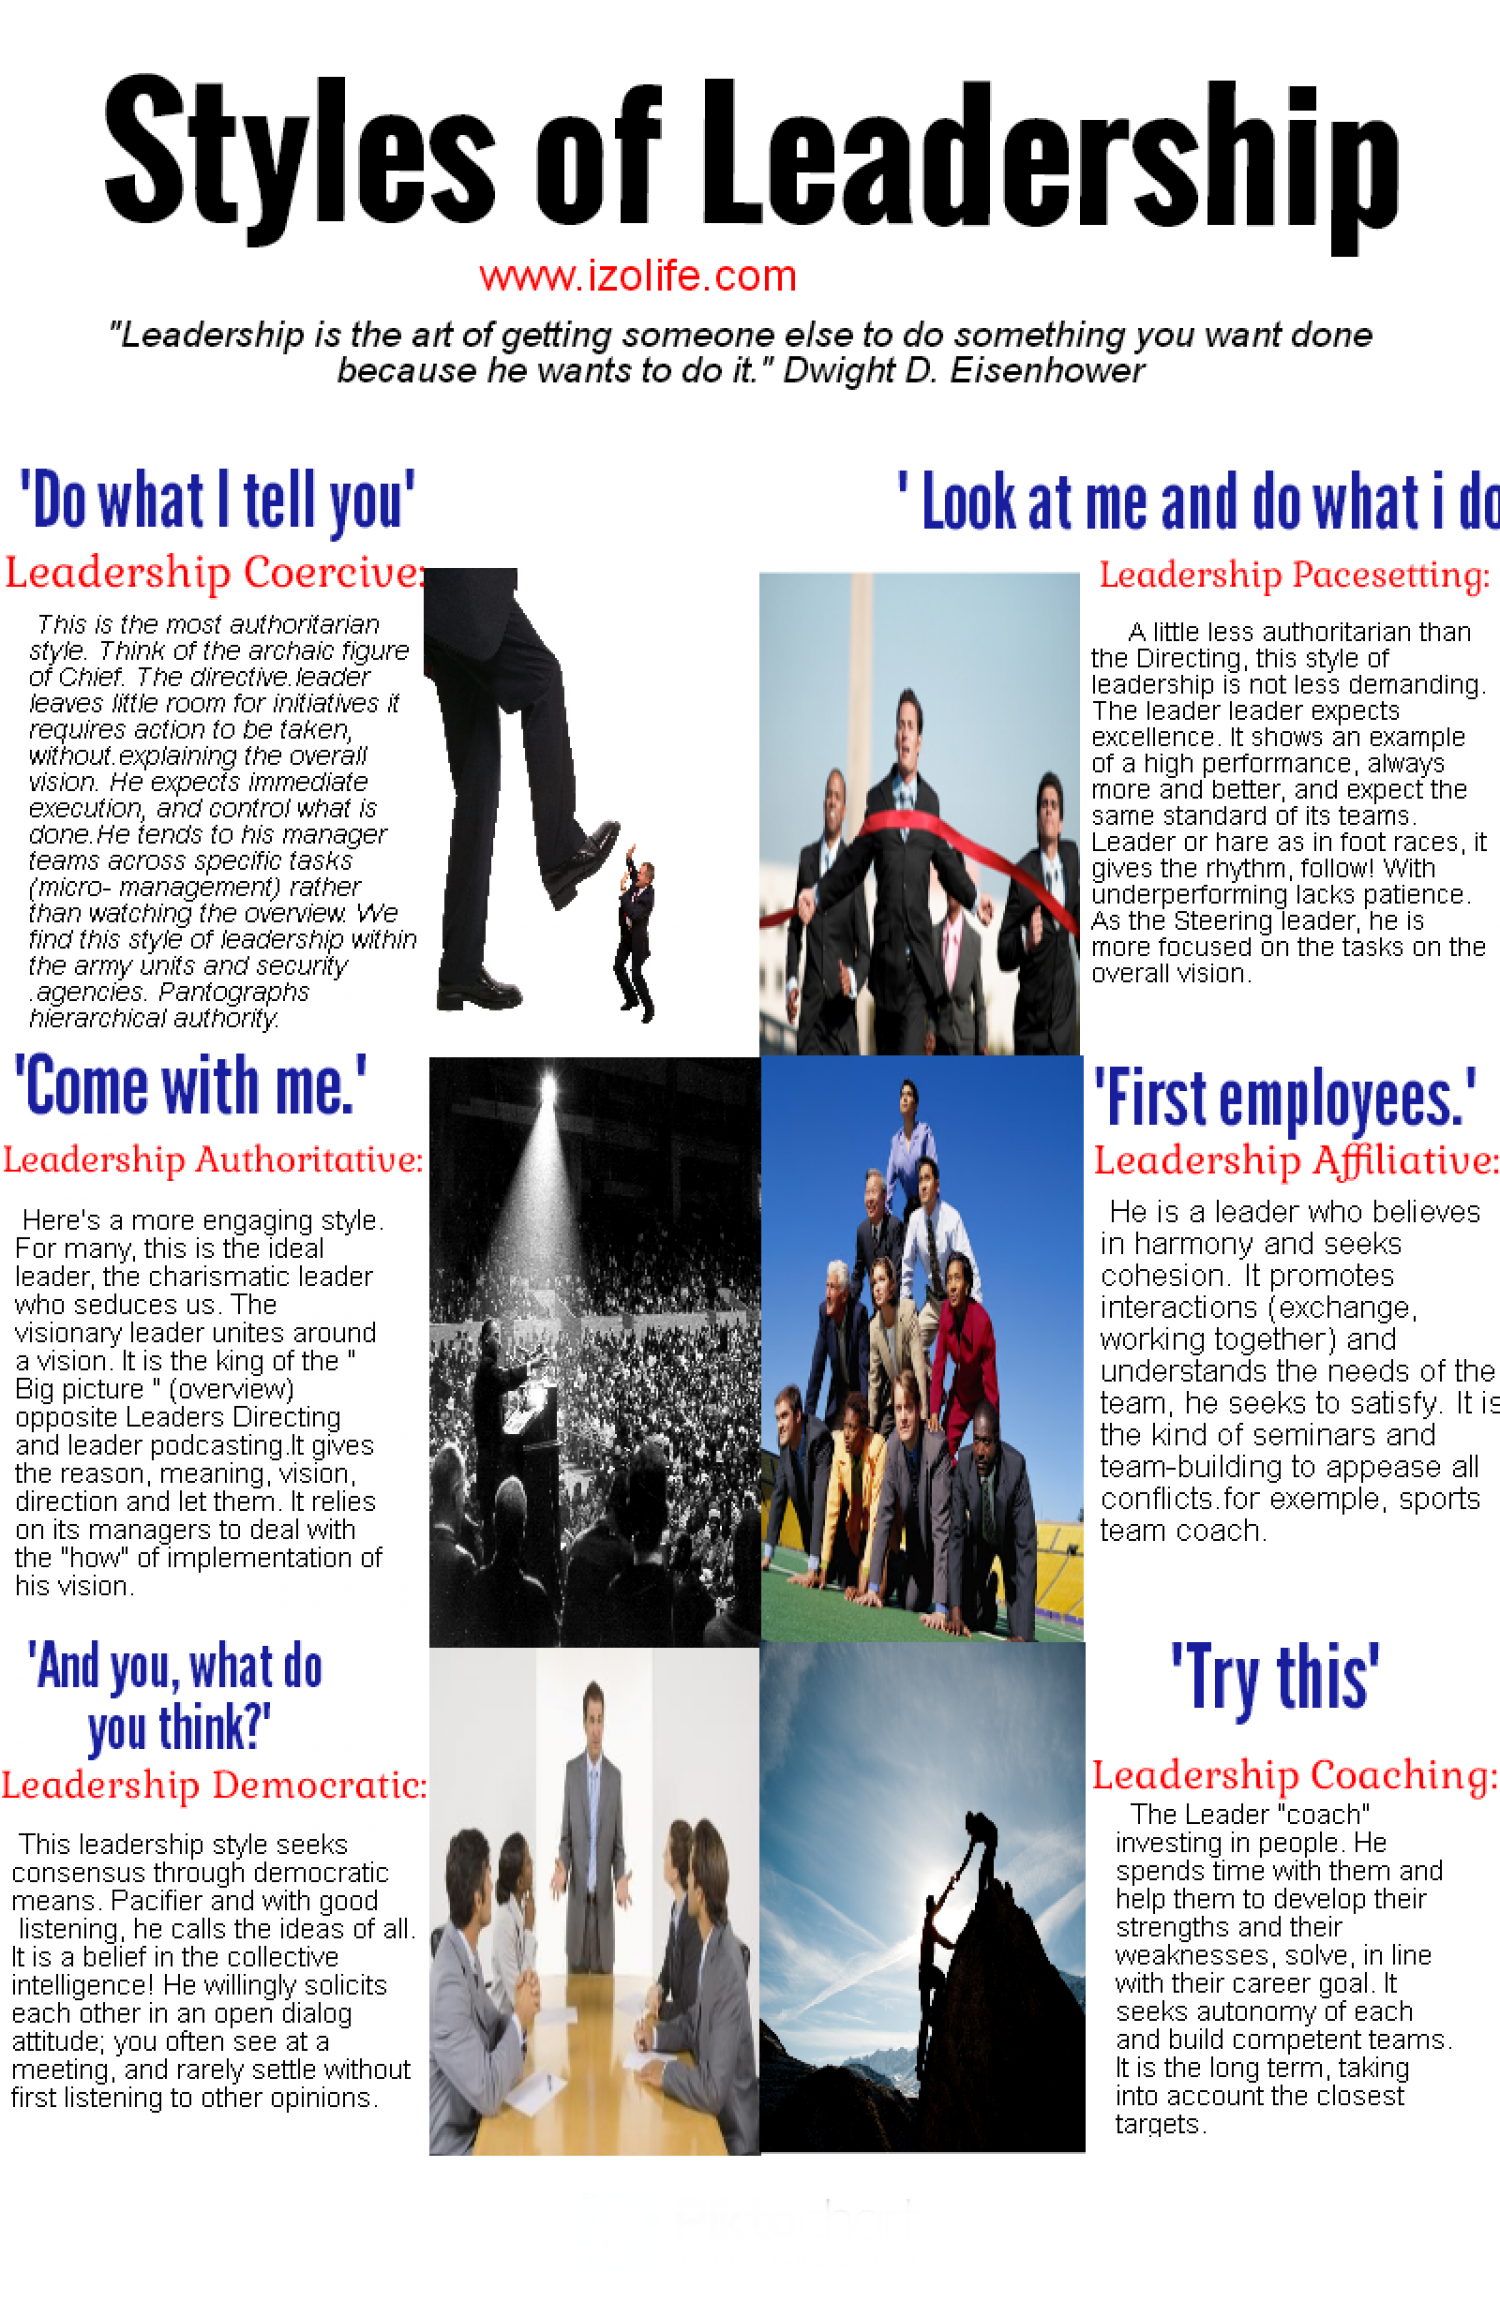 leadership expectations Sharing expectations for successful leadership up front enables teams to create an atmosphere for high performance and shared success from the start this article provides 20 leadership expectations that can be used to inspire and motivate leaders to.